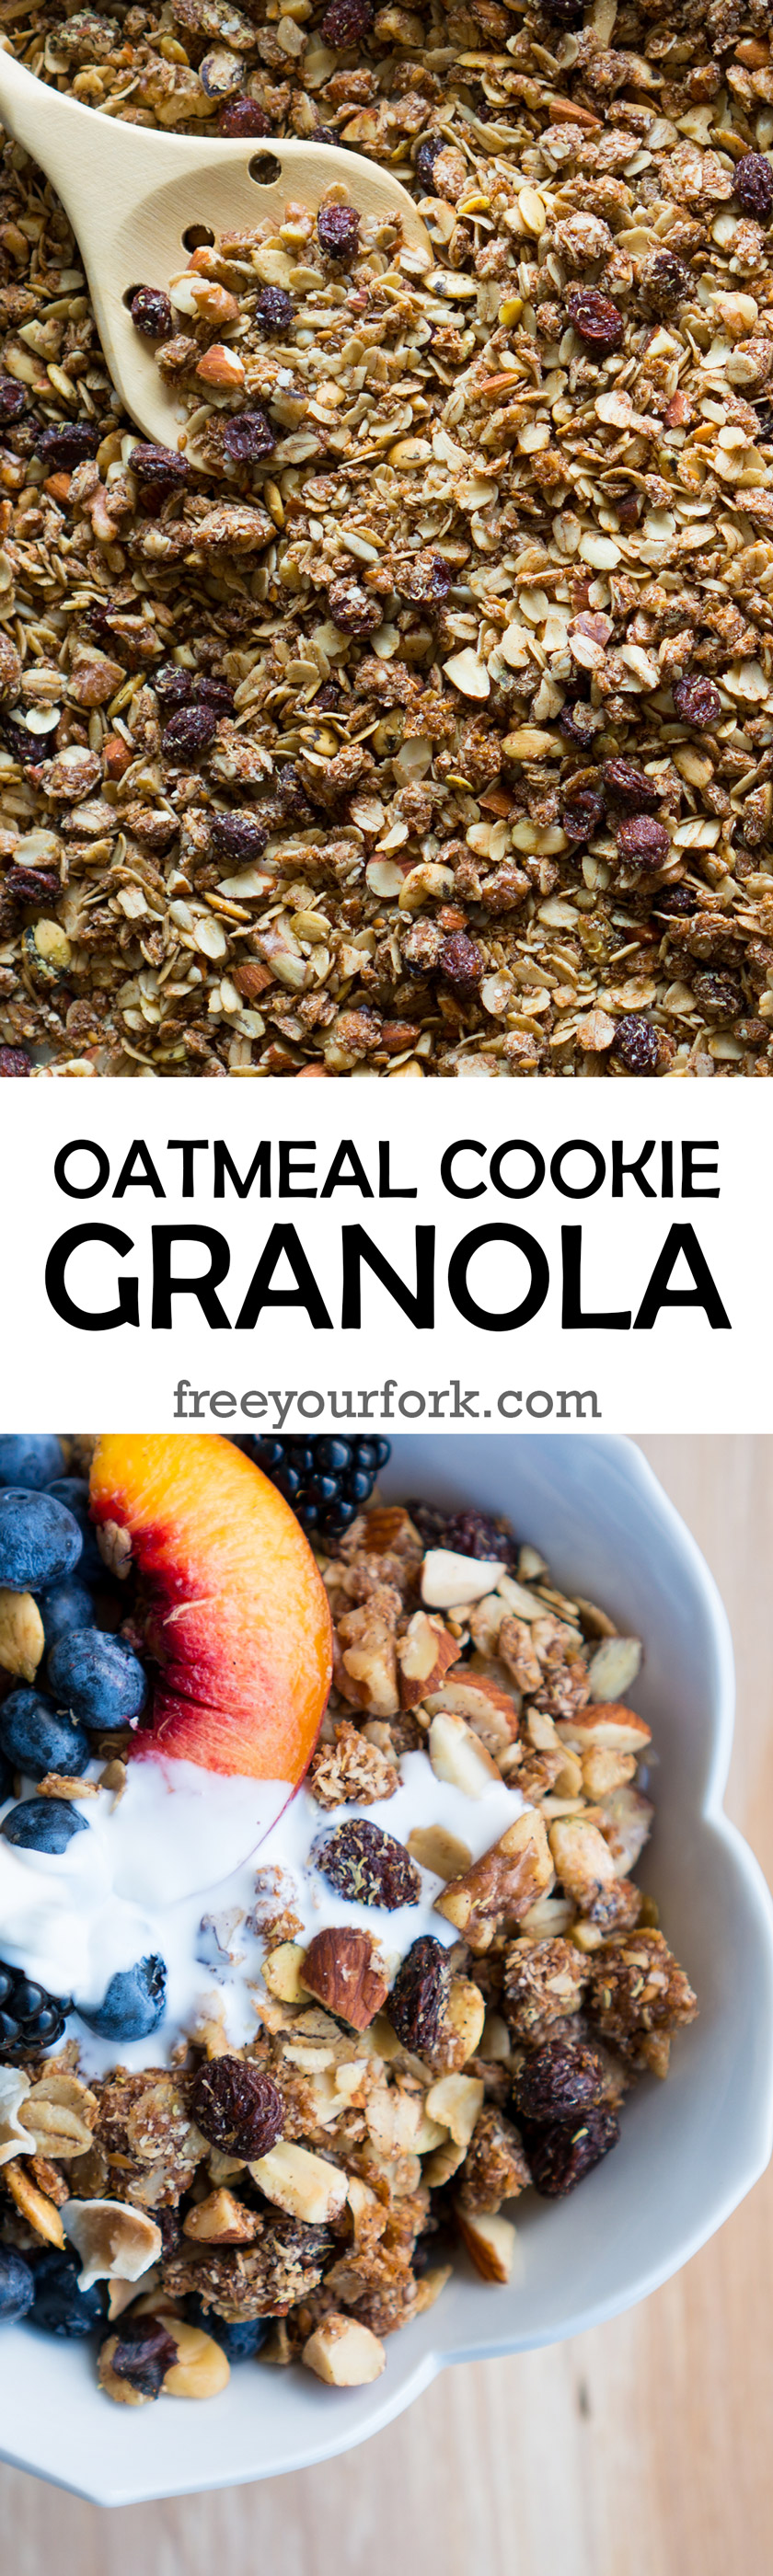 Oatmeal Cookie Granola - You won't believe how easy it is to make your own gluten-free Oatmeal Cookie Granola at home! This recipe has toasted oats, almonds, walnuts, flaxseeds, coconut, cinnamon, vanilla, quinoa flakes, & more ♥| freeyourfork.com